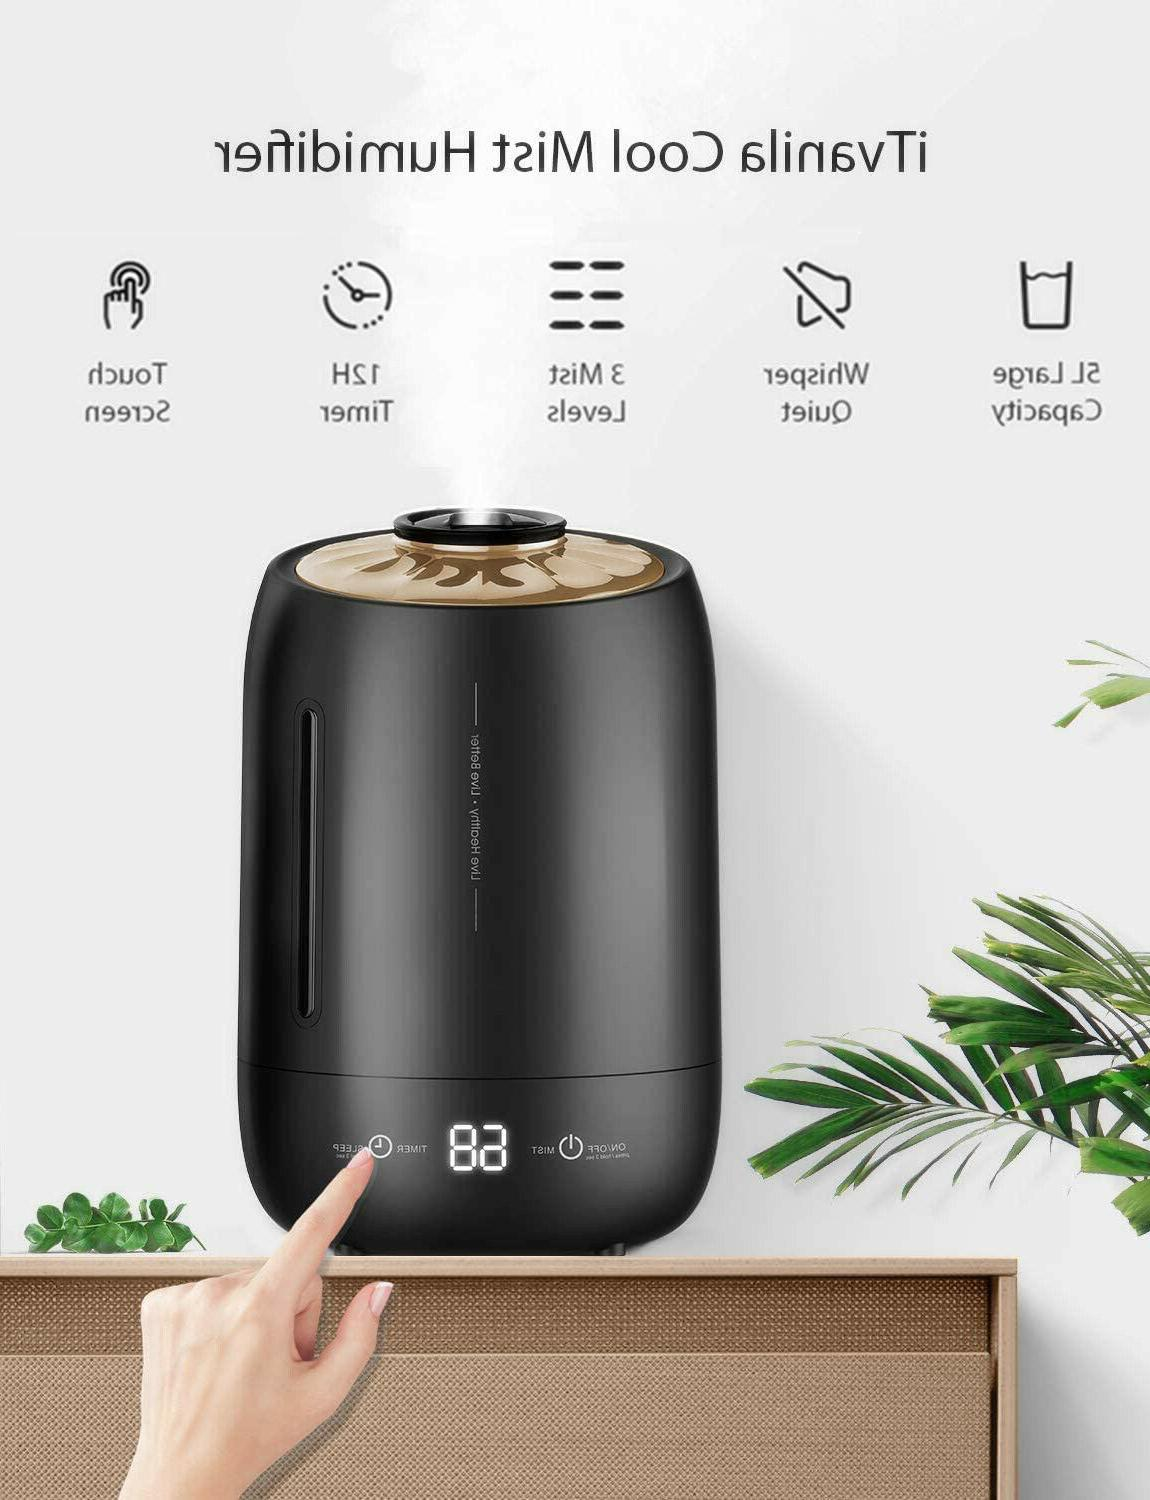 Cool Humidifiers for Baby & Bedroom, Air Humidifier, Whisper-Quiet